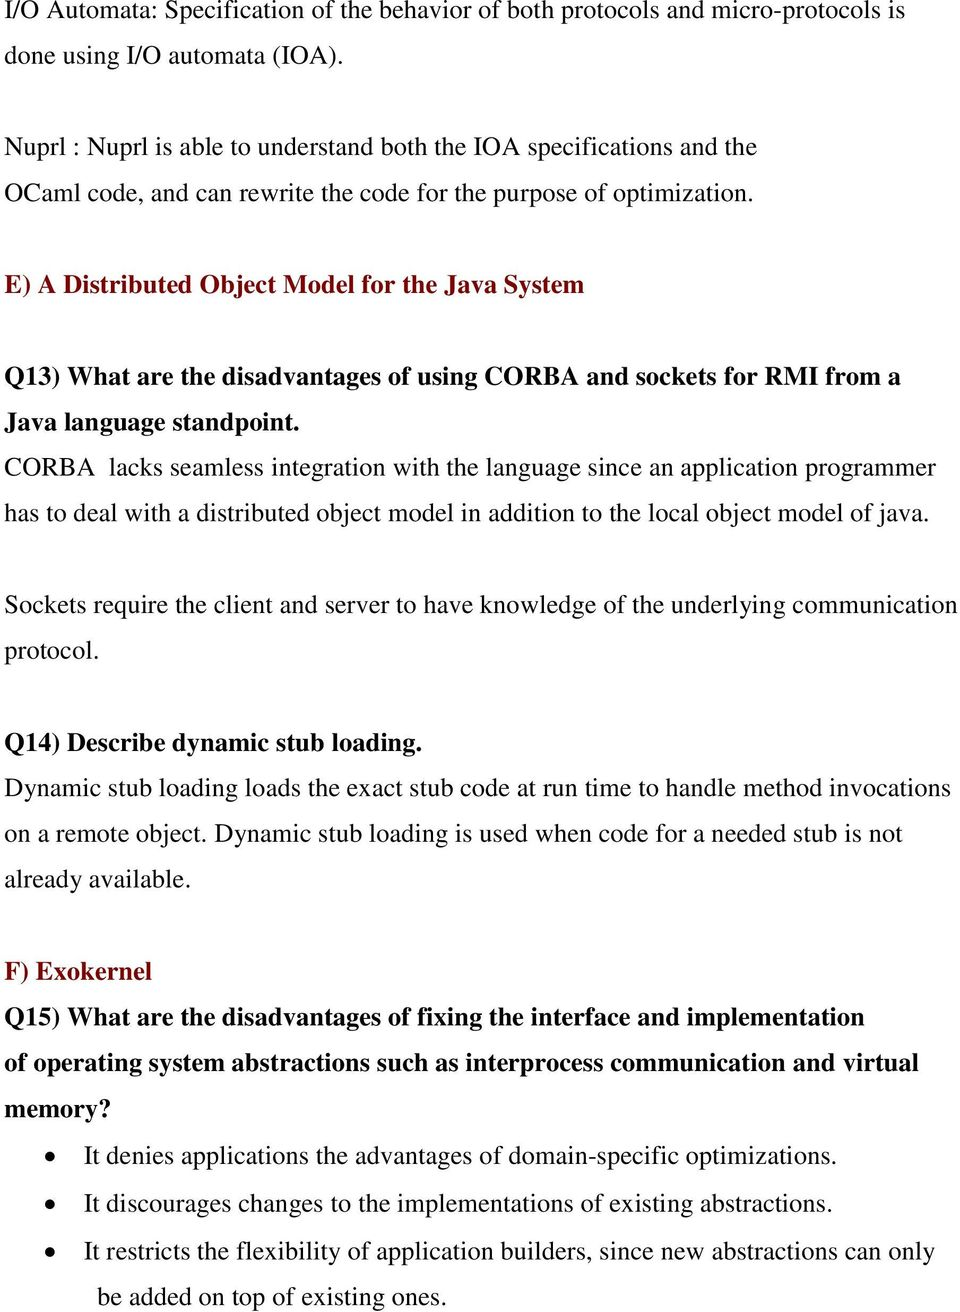 E) A Distributed Object Model for the Java System Q13) What are the disadvantages of using CORBA and sockets for RMI from a Java language standpoint.